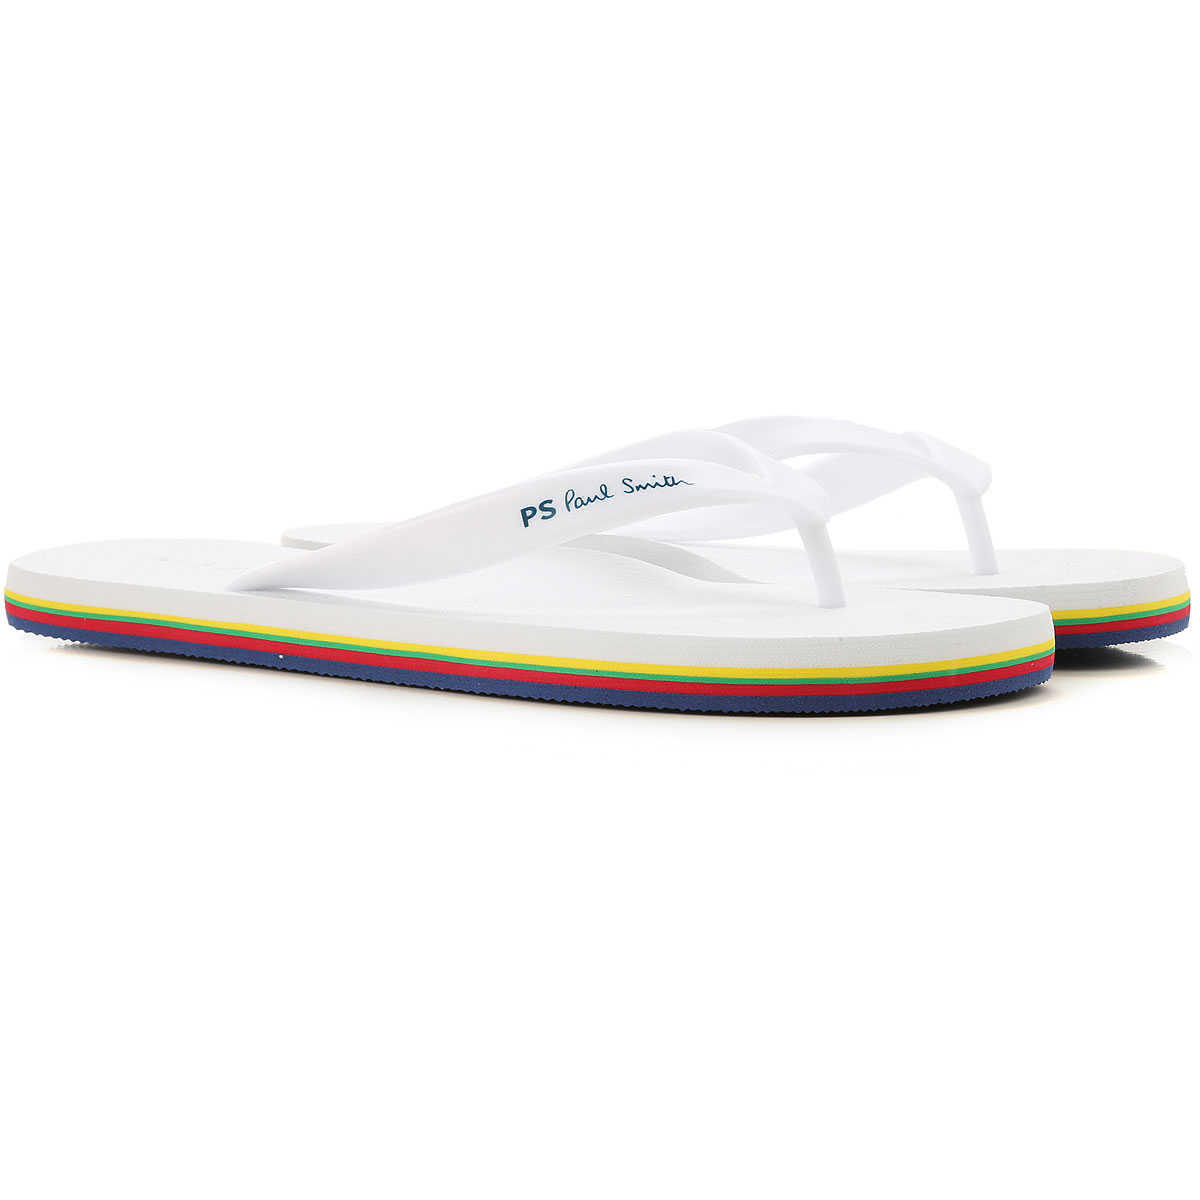 Paul Smith Sandals for Men On Sale Optical White DK - GOOFASH - Mens SANDALS